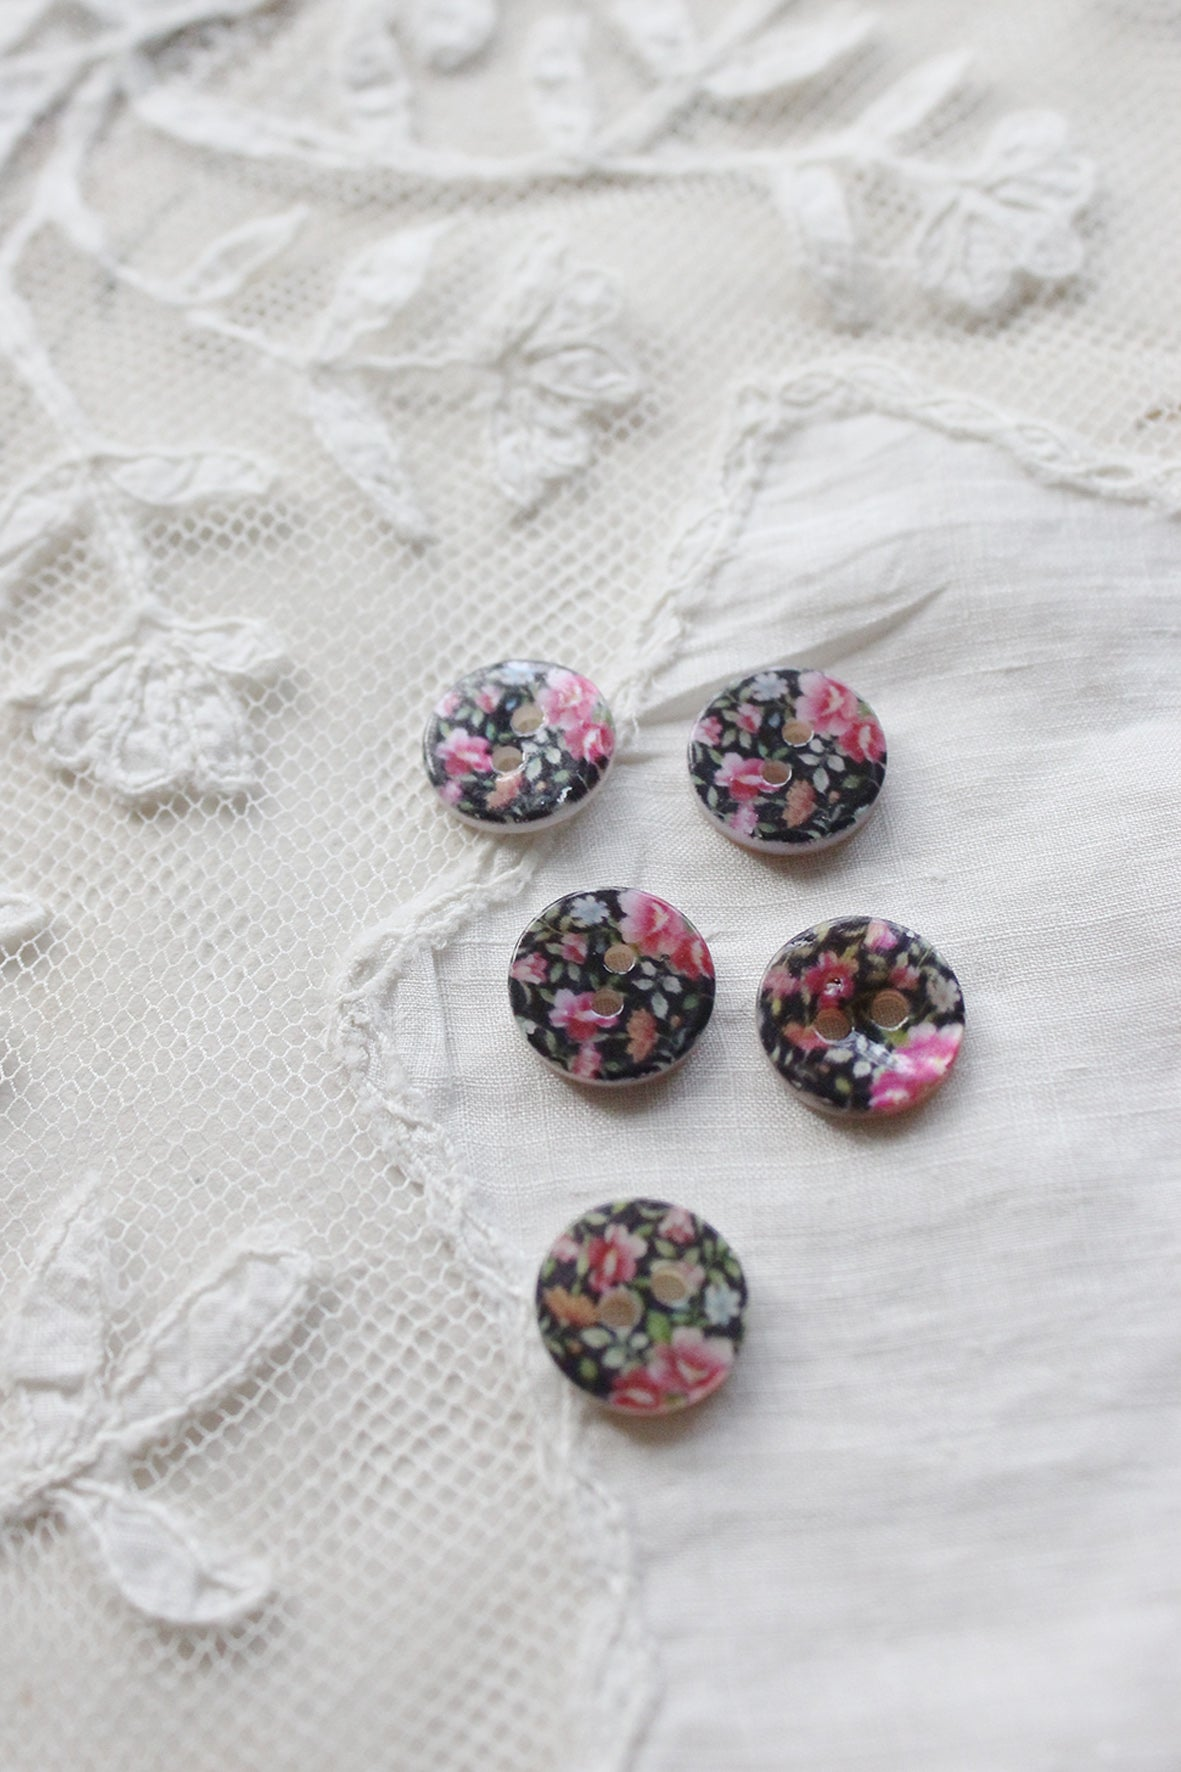 Floral mother of pearl buttons - pink flowers on black